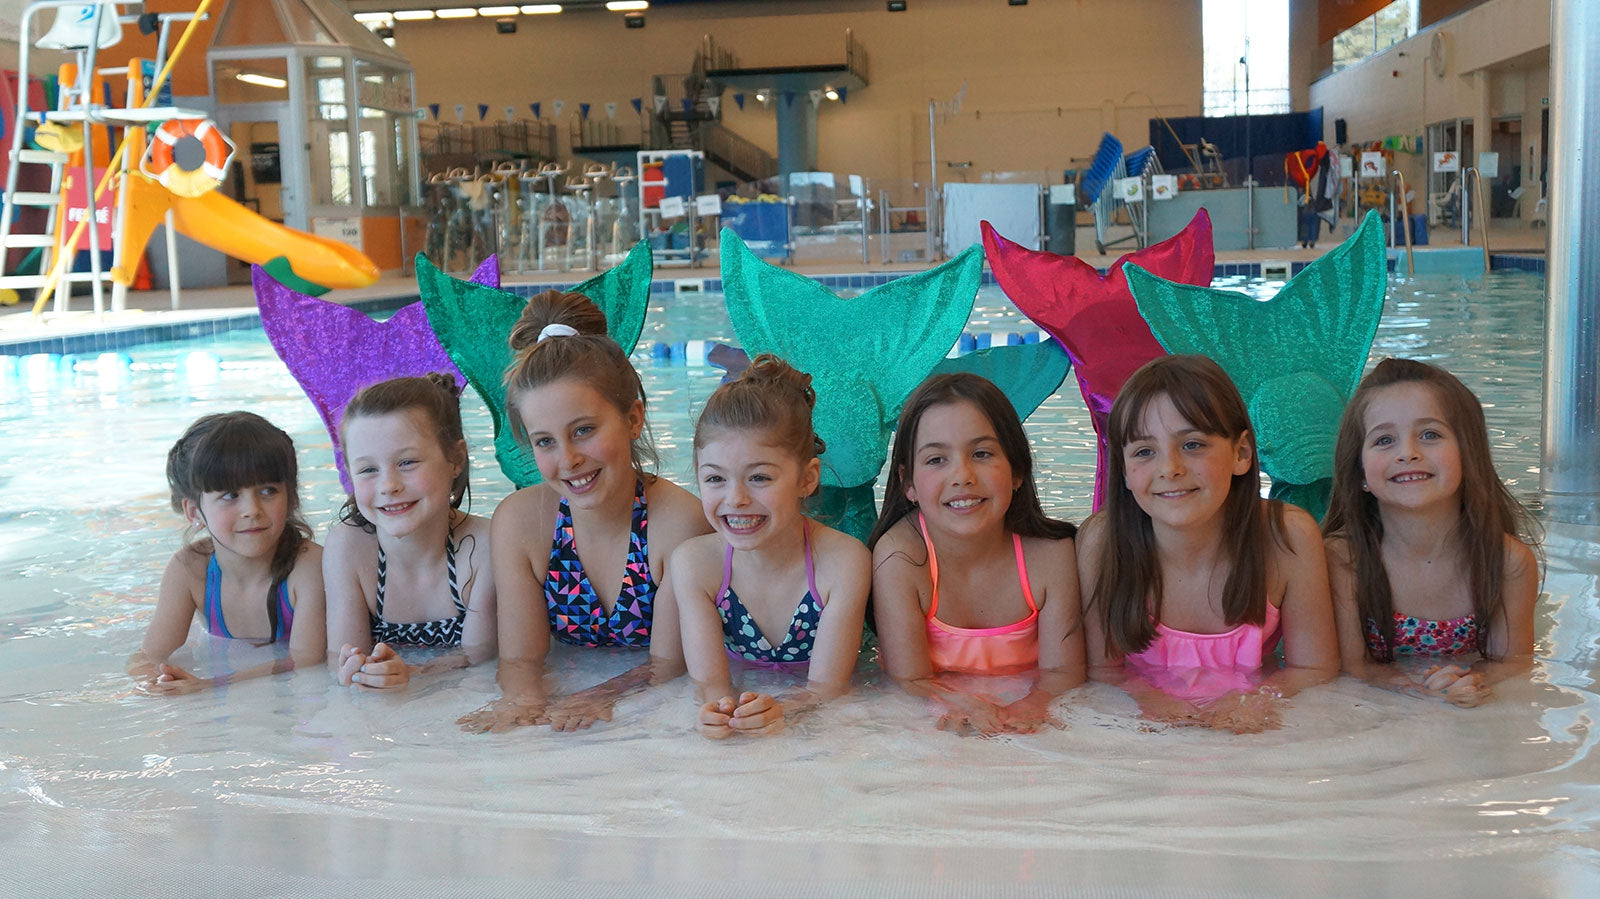 Mermaid Birthday Party Bachelorette Party And Mermaid For Hire - Childrens birthday parties orleans ontario